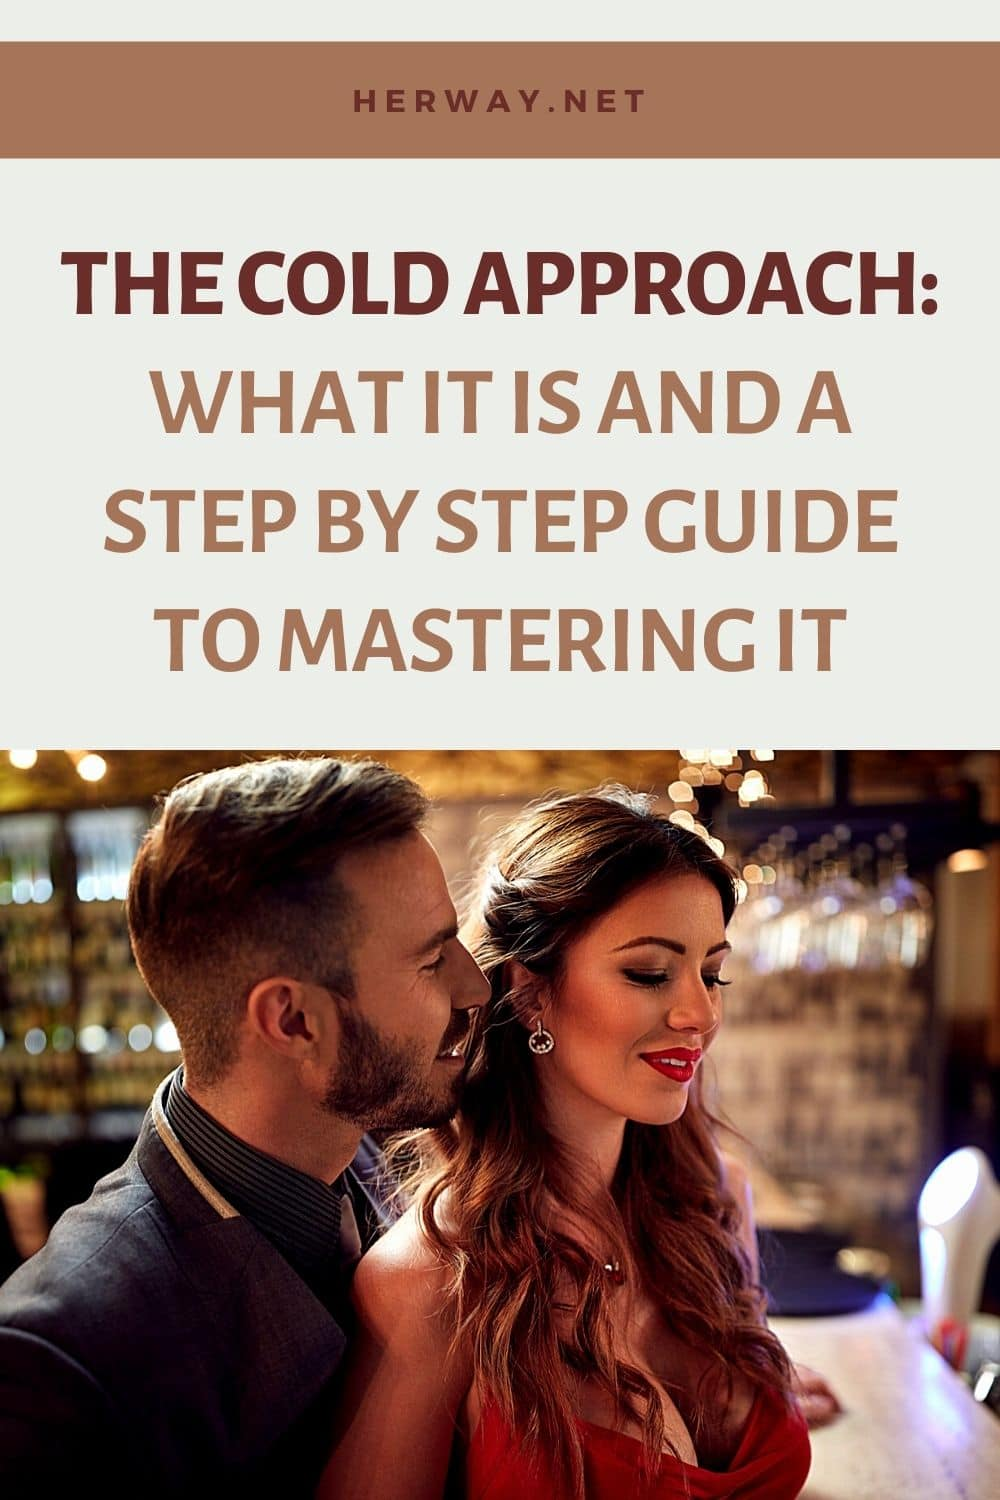 The Cold Approach: What It Is And A Step By Step Guide To Mastering It